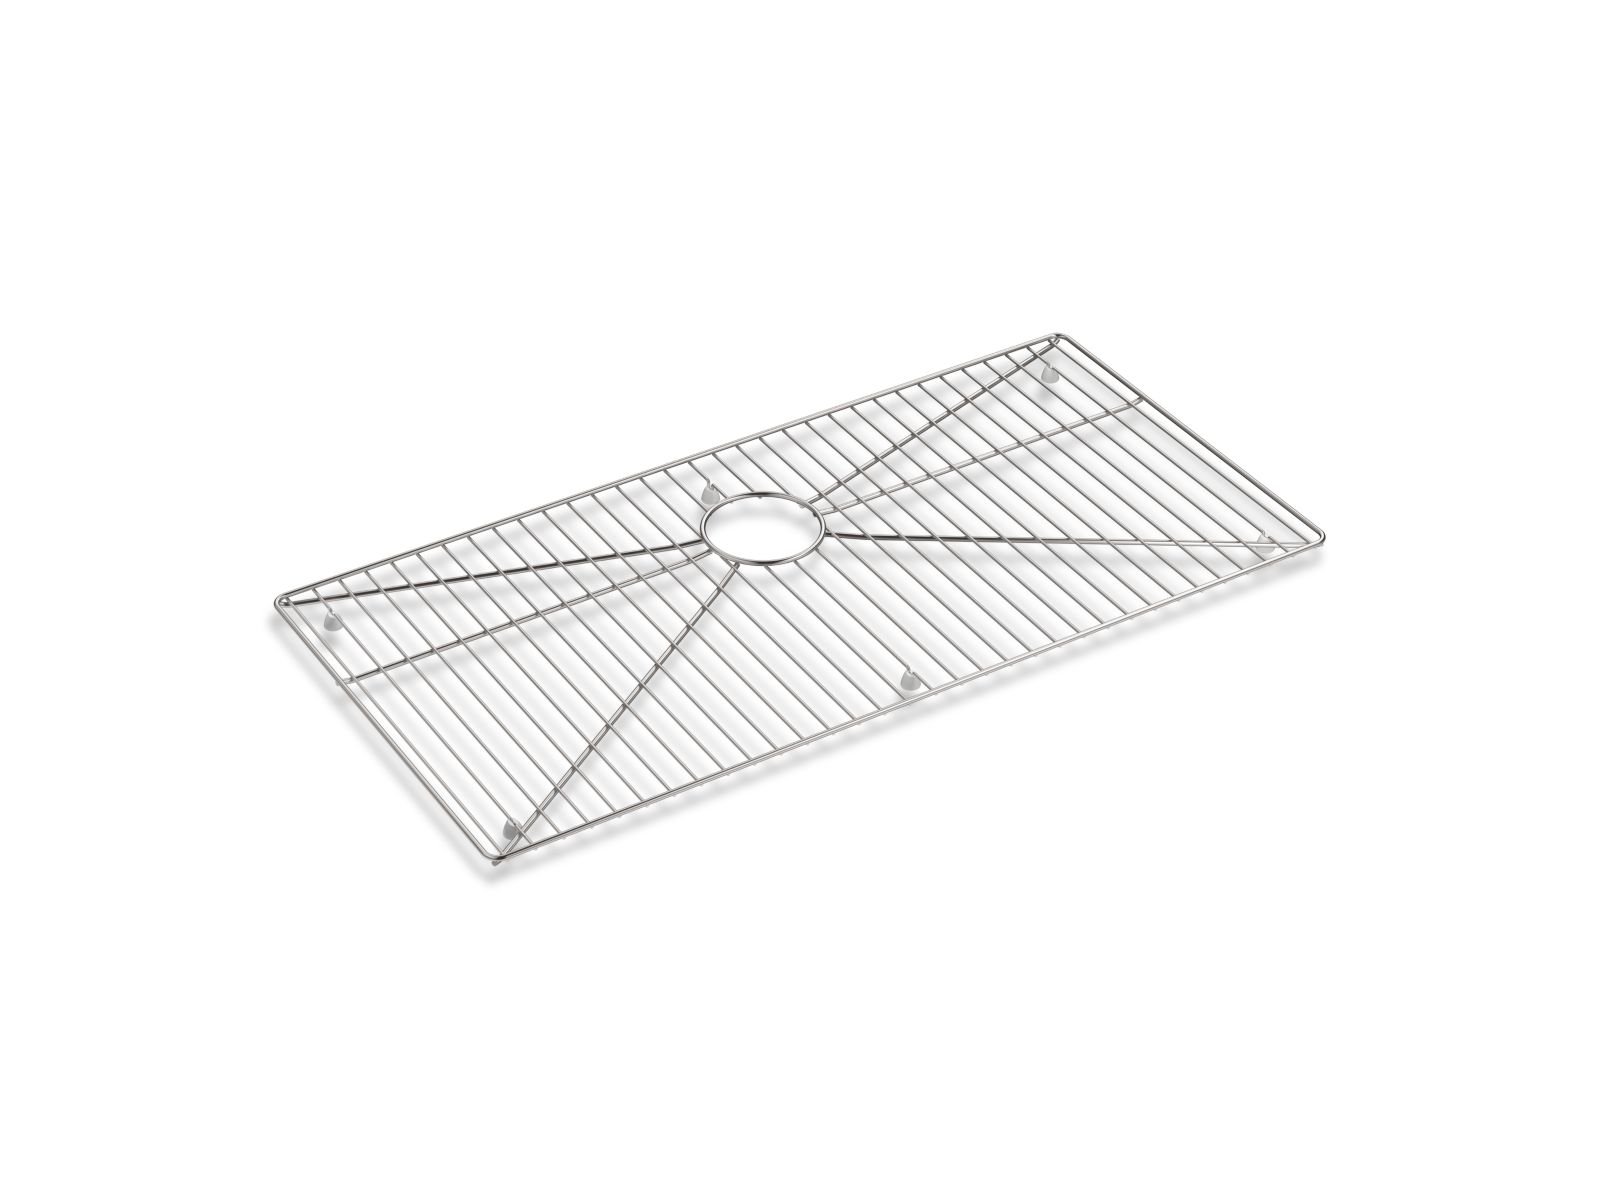 "Kohler K-5411-ST Stainless steel sink rack, 32-3/4"" x 16"" for K-5283 Strive™ kitchen sink Stainless Steel"